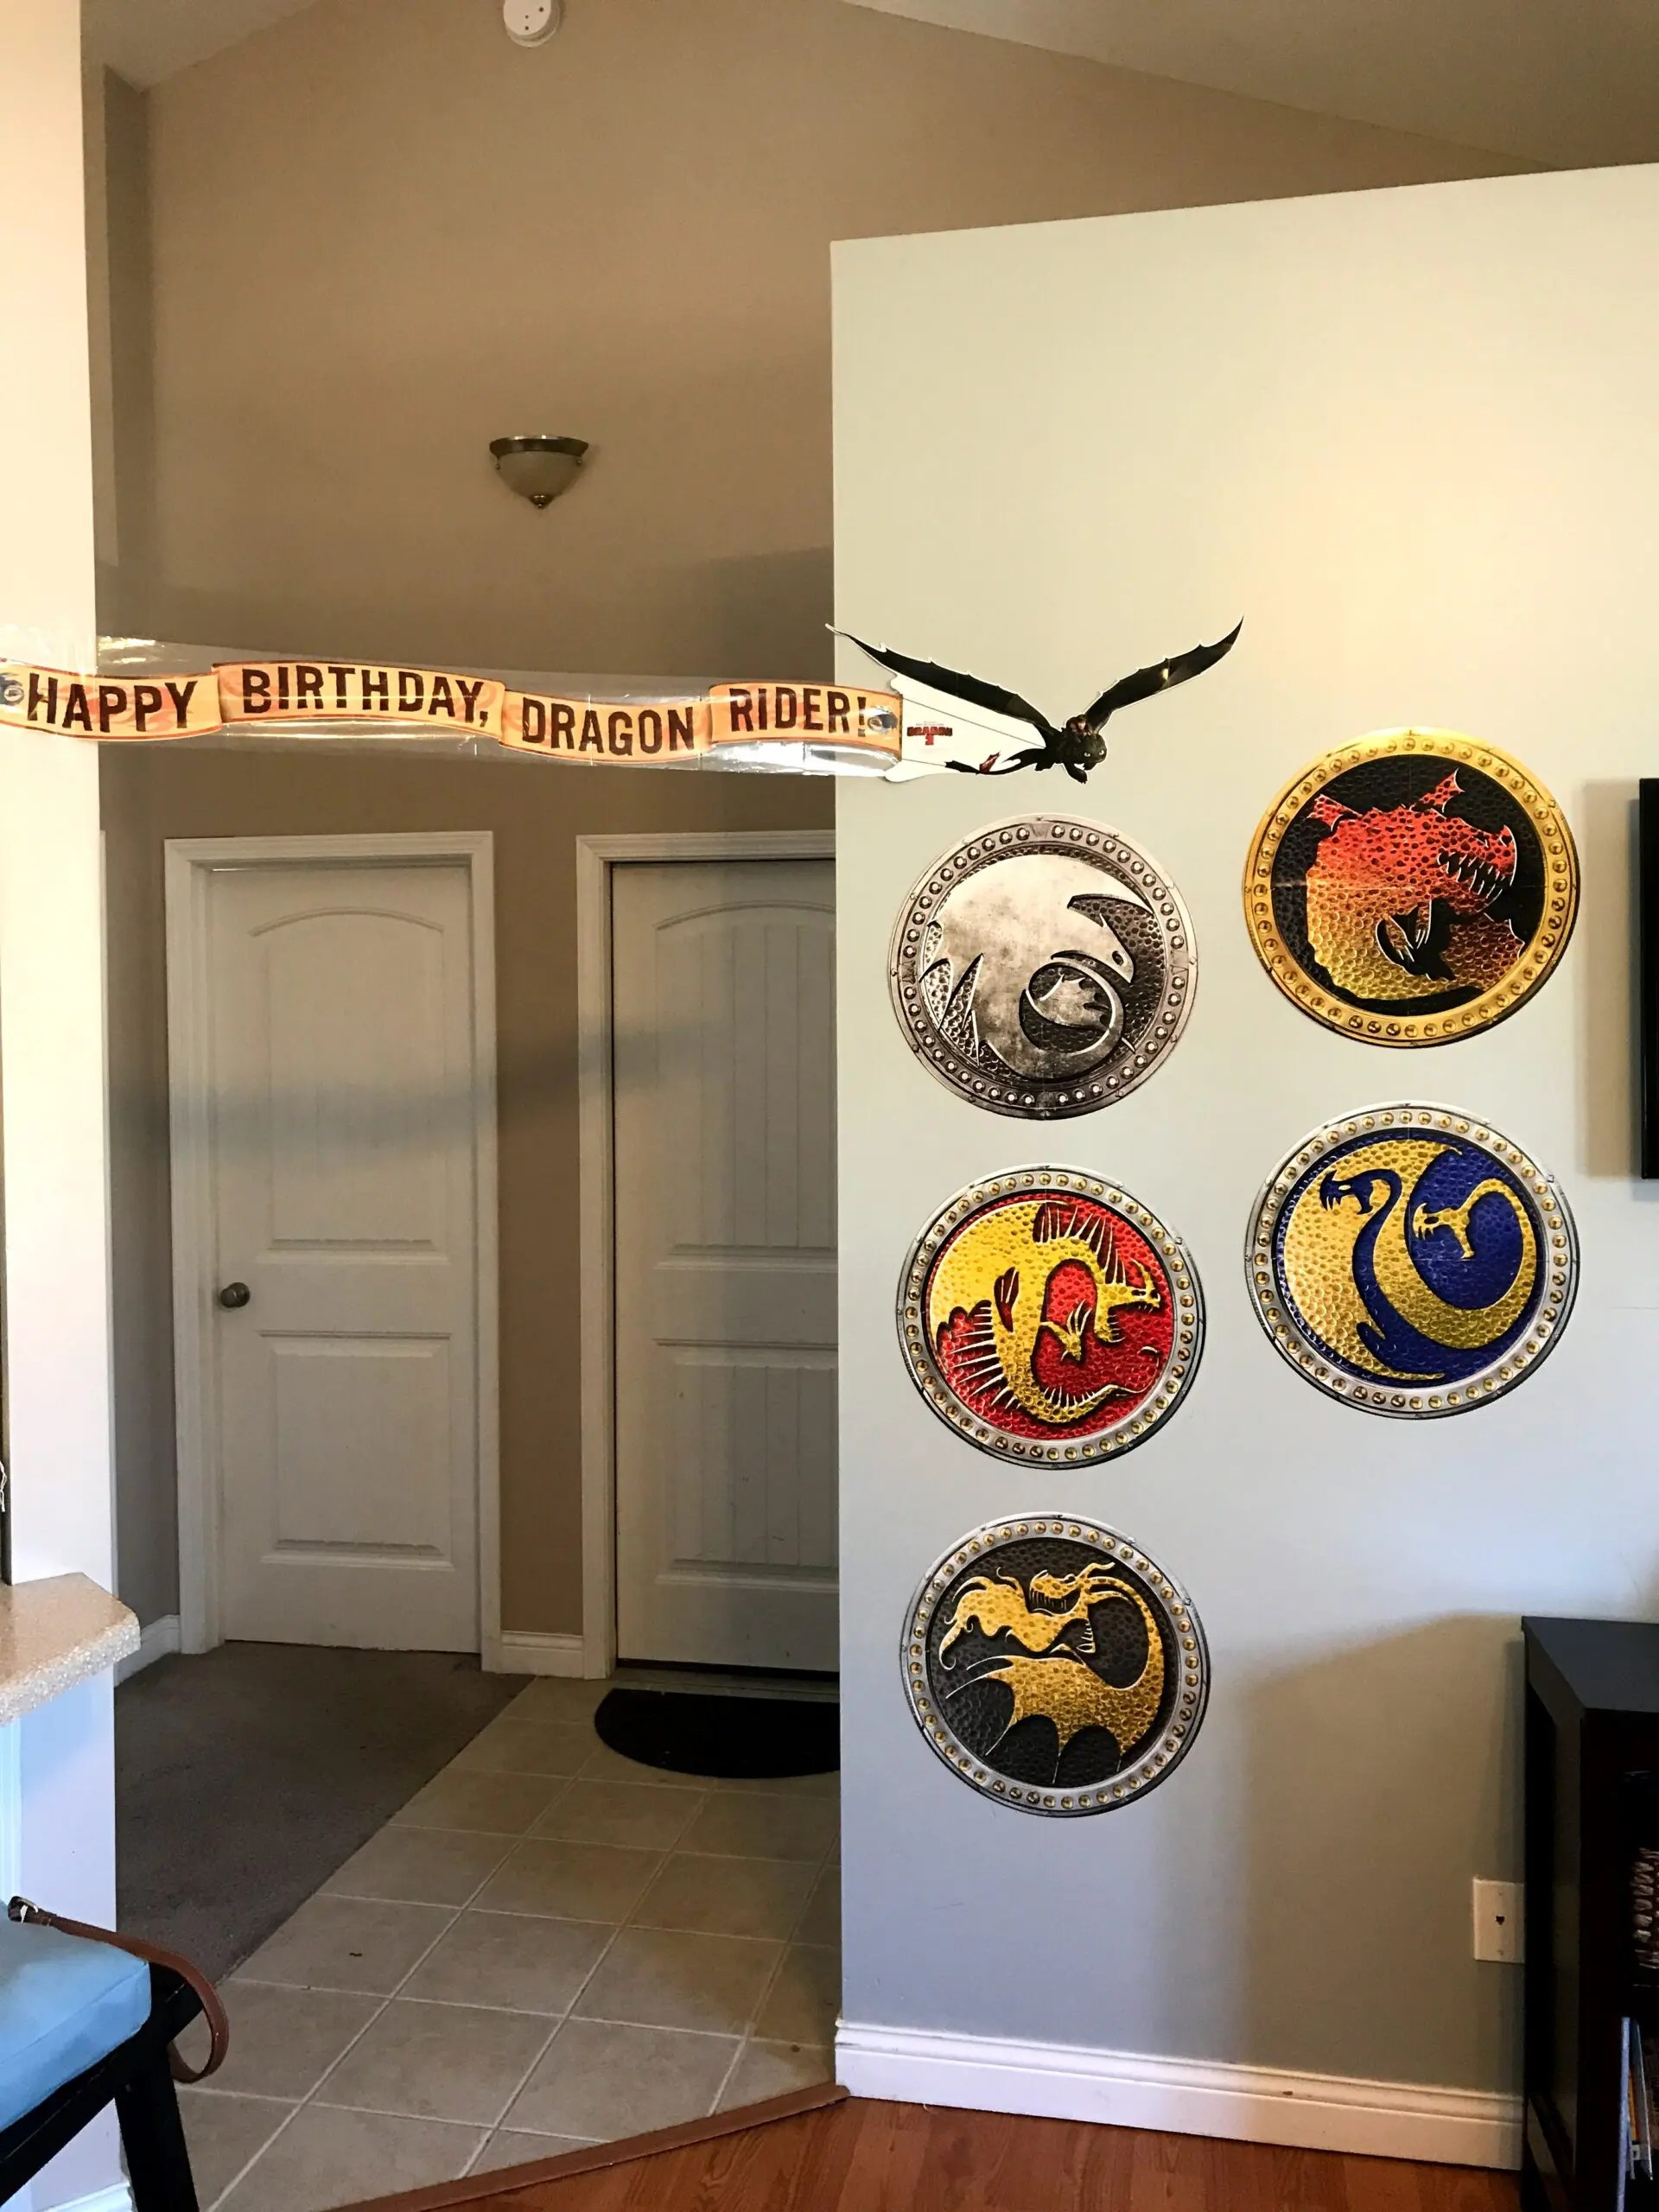 How to Train Your Dragon - Shield Decorations